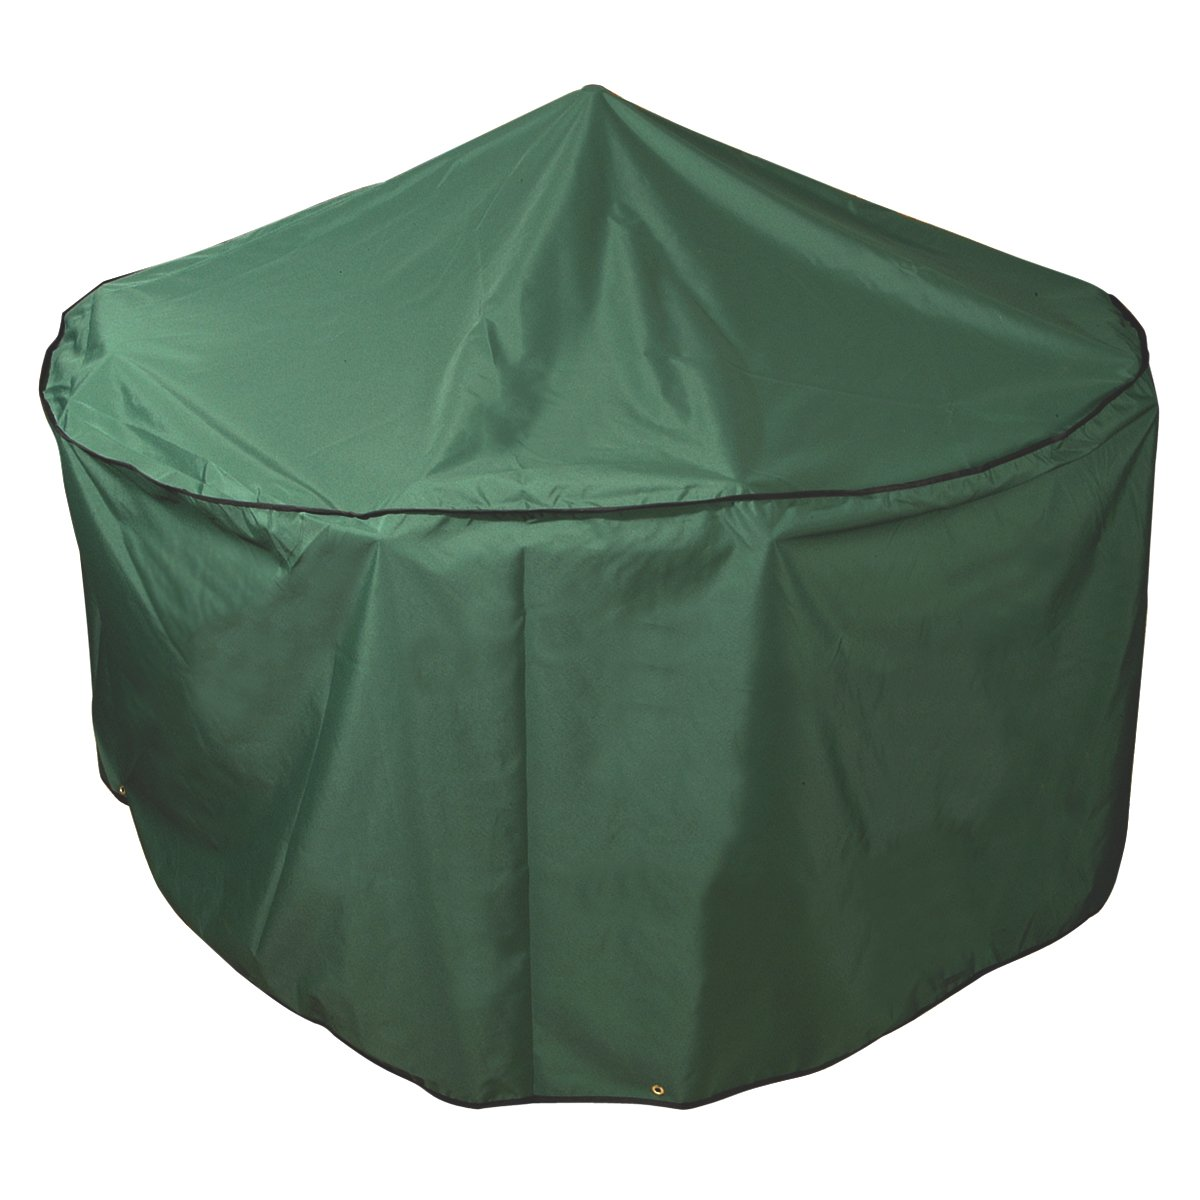 Bosmere D515 STORM BLACK 4 Seat Circular Patio Set Cover Bosmere Products Ltd